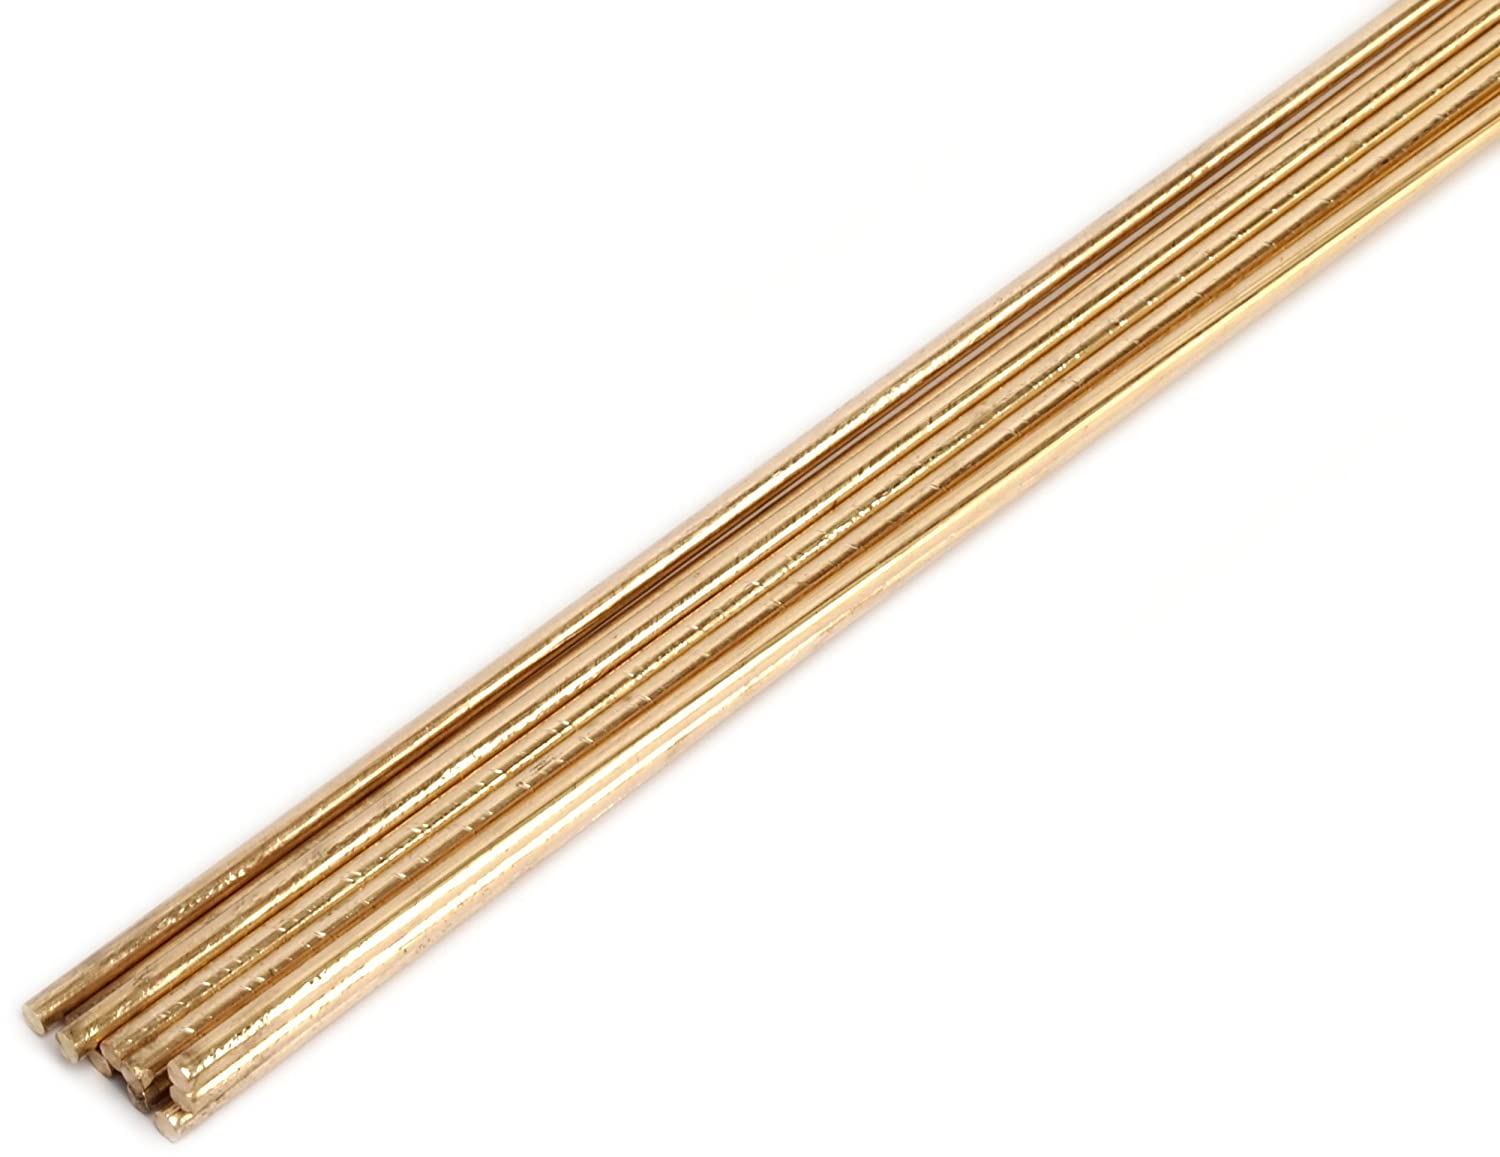 Forney 47300 Bare Brass Gas Brazing Rod, 1/8-Inch-by-18-Inch, 10-Rods - Arc Welding Equipment - Amazon.com